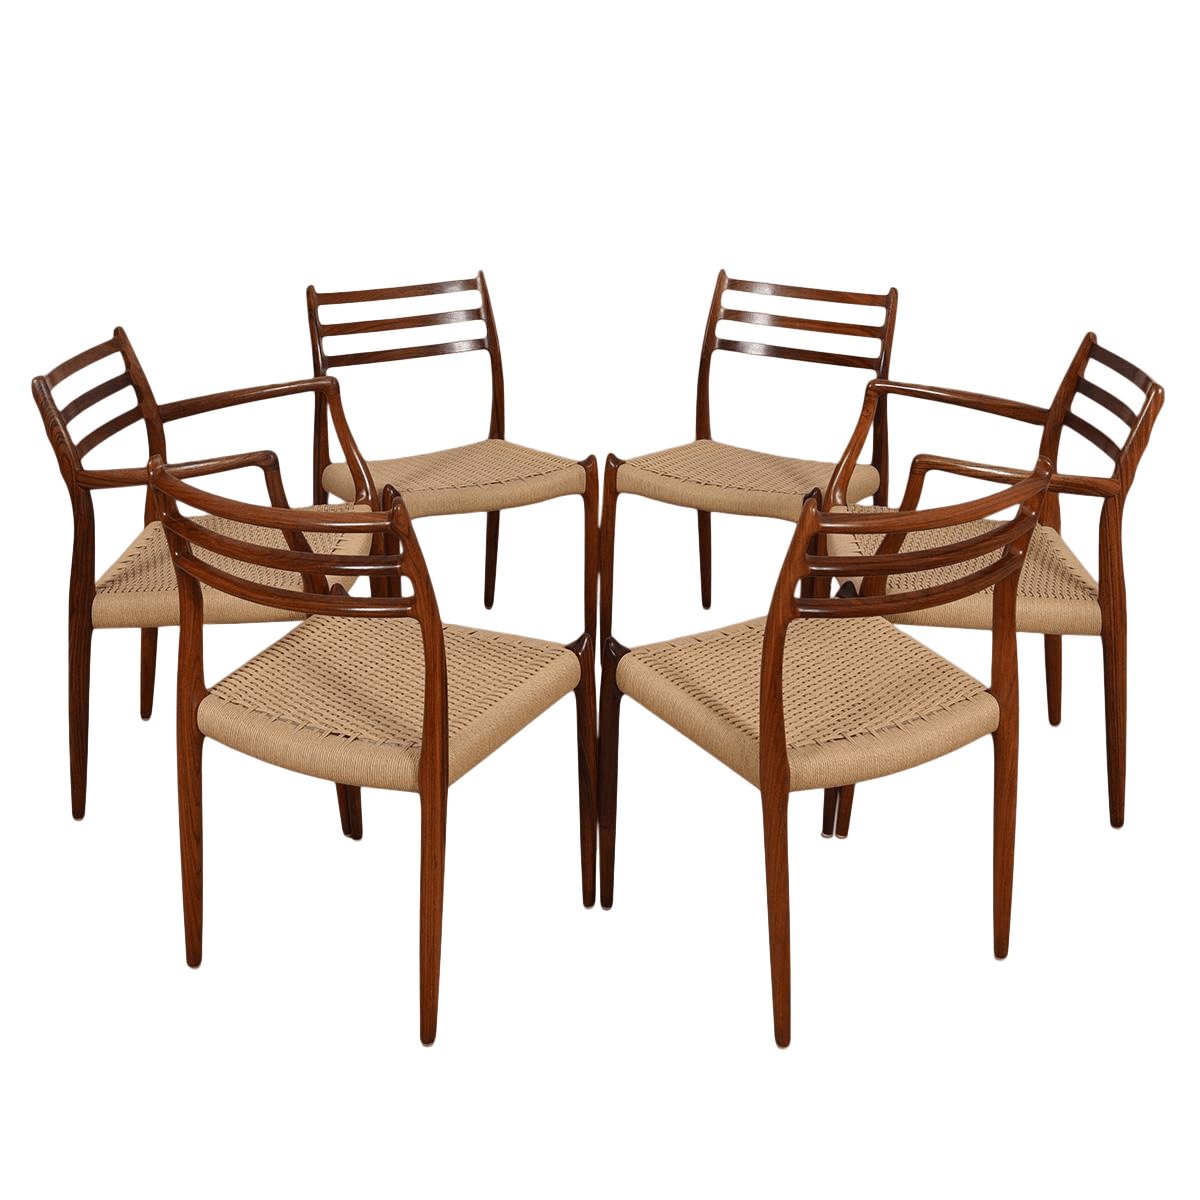 danish modern dining chair personalized rocking for baby set of 6 chairs by niels moller in rosewood with cord seats